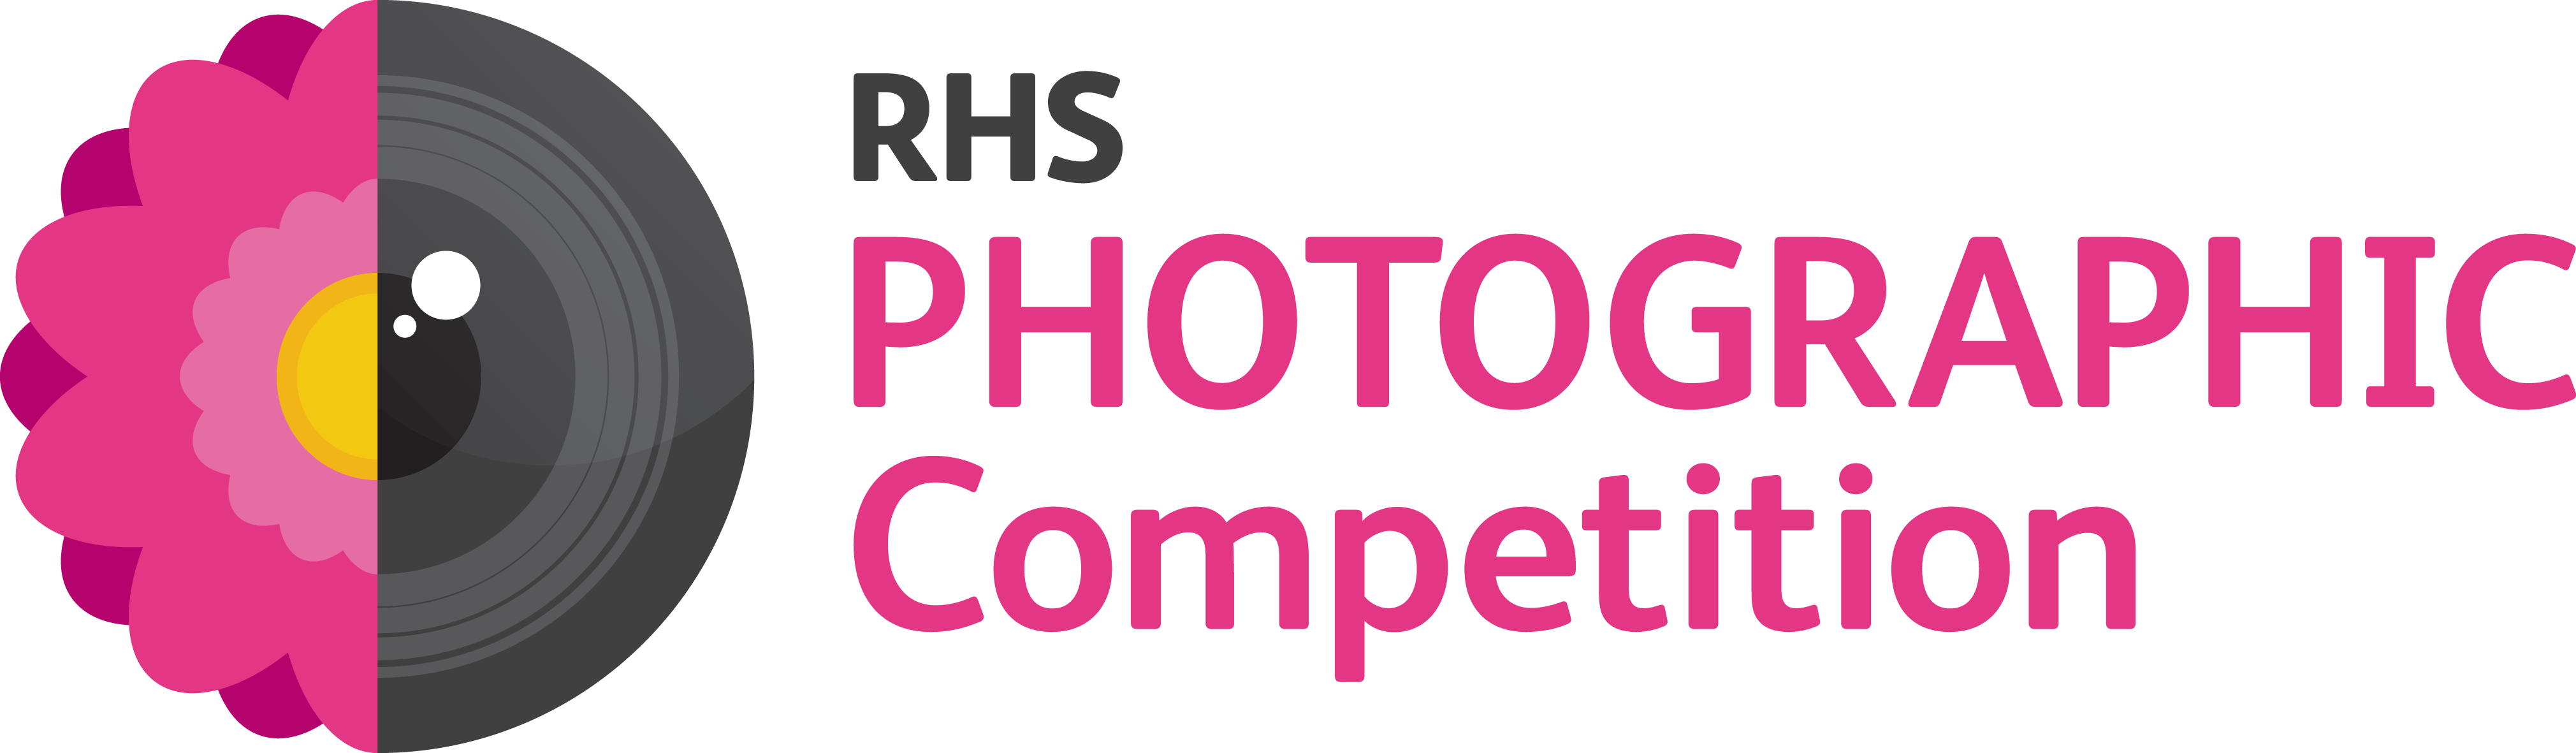 RHS Photographic Competition 2017 - logo